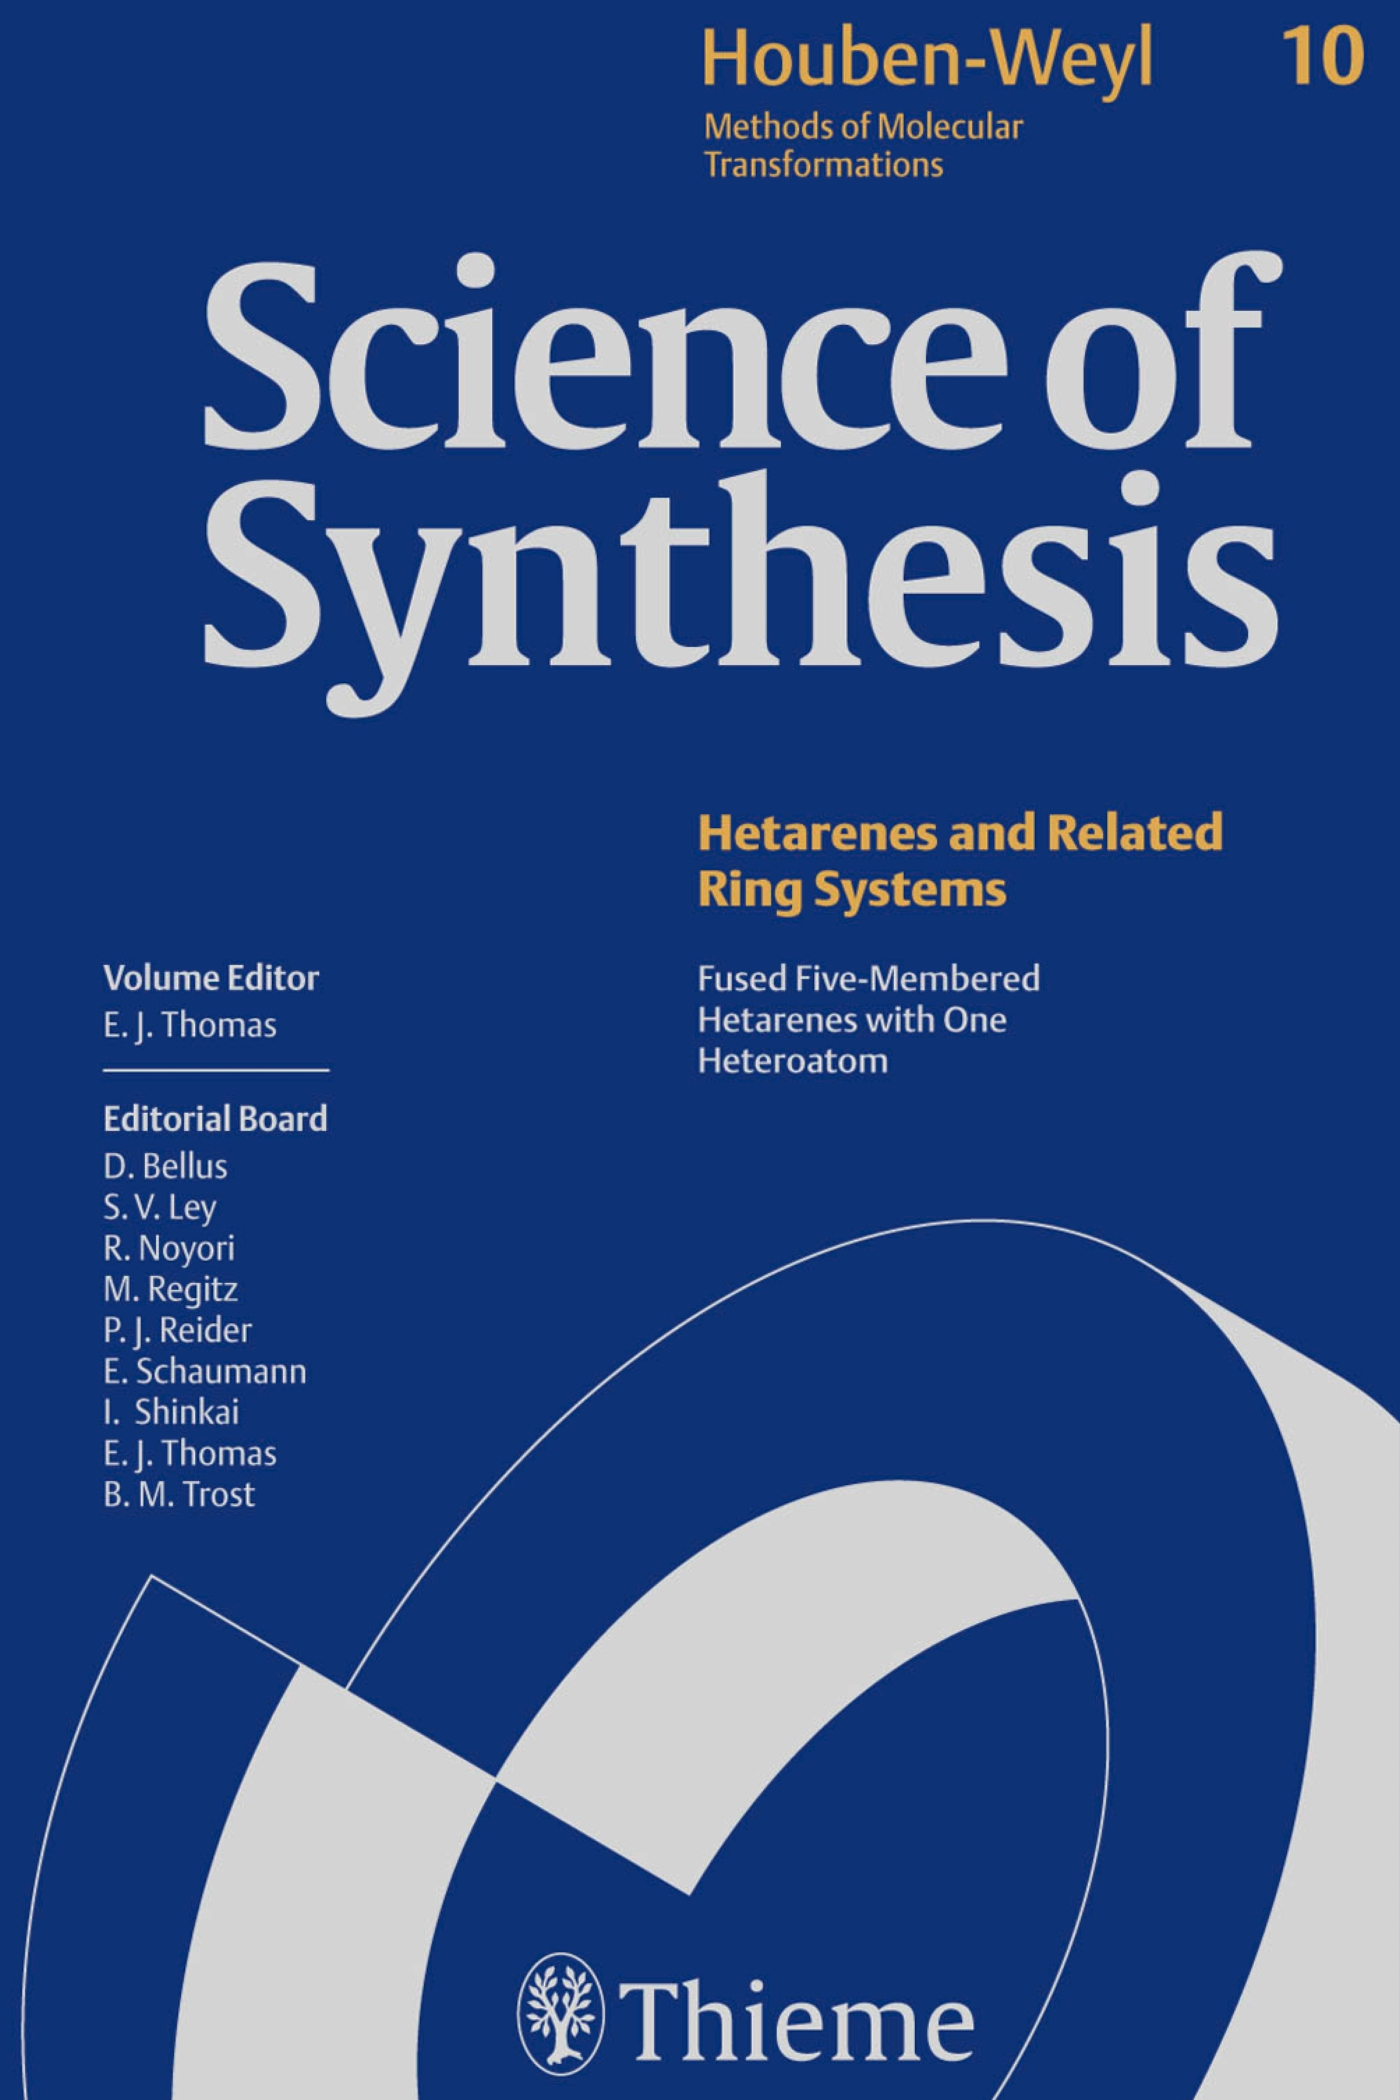 Science of Synthesis: Houben-Weyl Methods of Molecular Transformations  Vol. 10